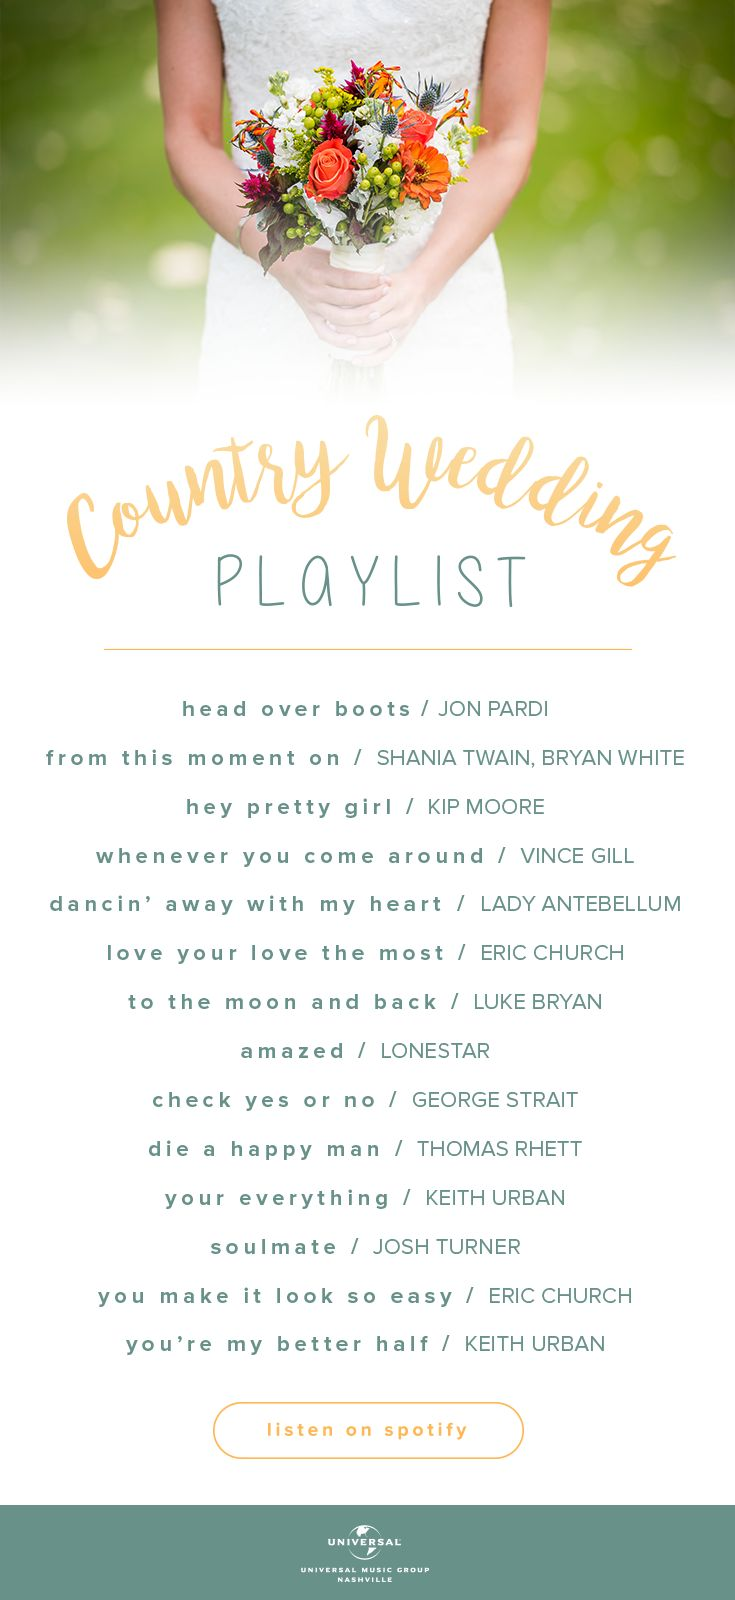 Best 25+ Country wedding music ideas on Pinterest | Girl wedding ...